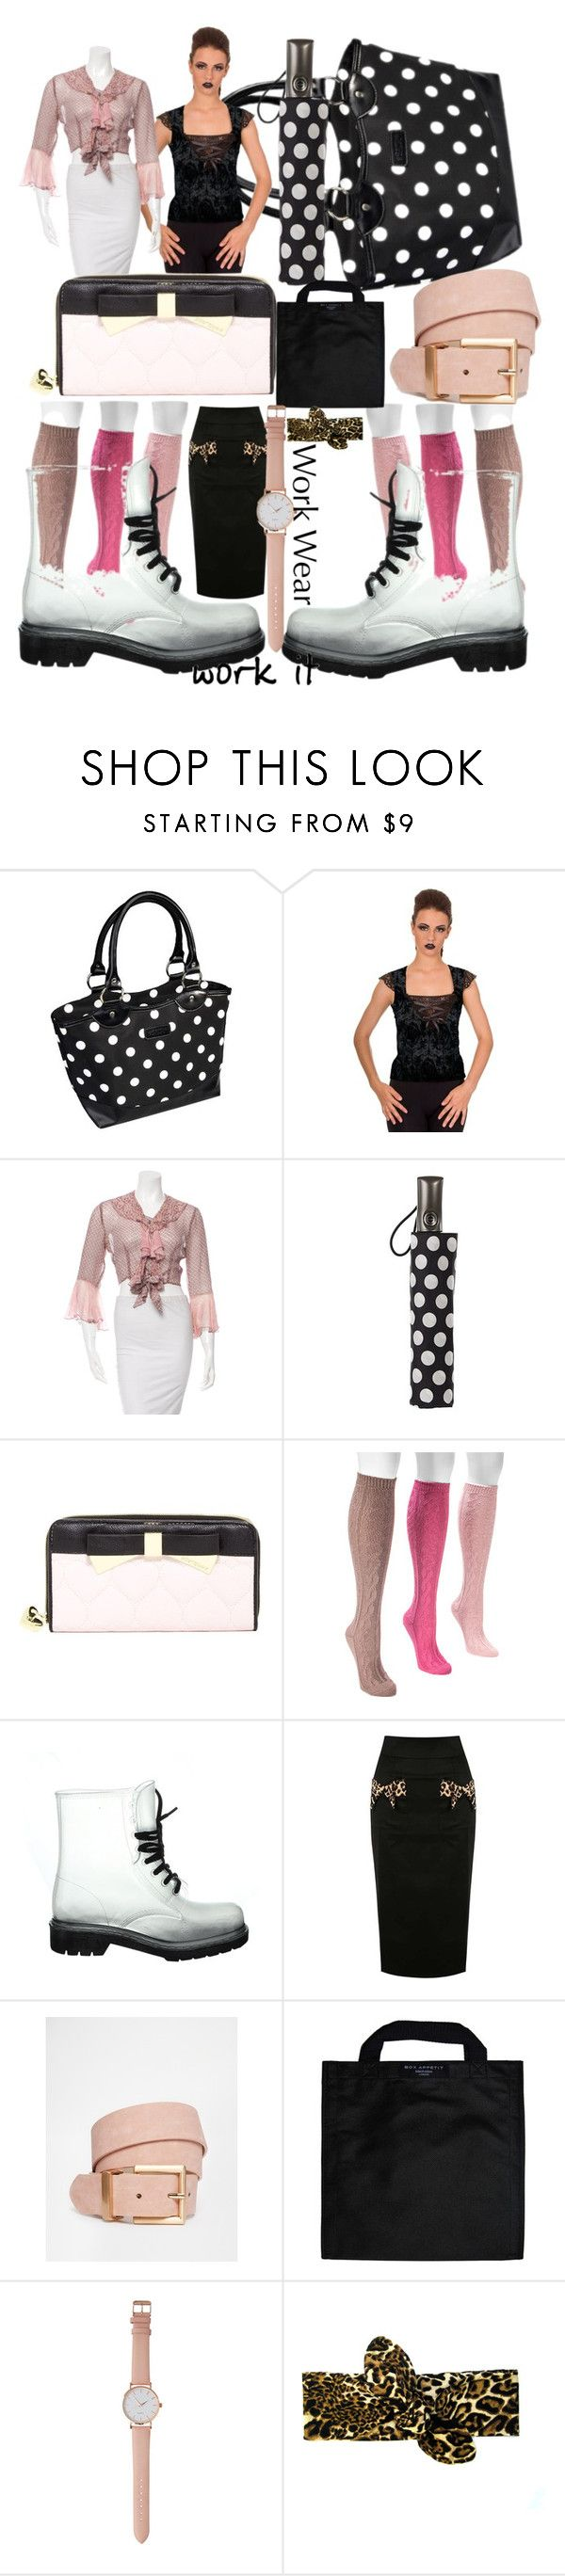 """""""not my job!!"""" by lerp ❤ liked on Polyvore featuring Anna Sui, Totes, Betsey Johnson, Muk Luks, ASOS, Black+Blum, women's clothing, women, female and woman"""